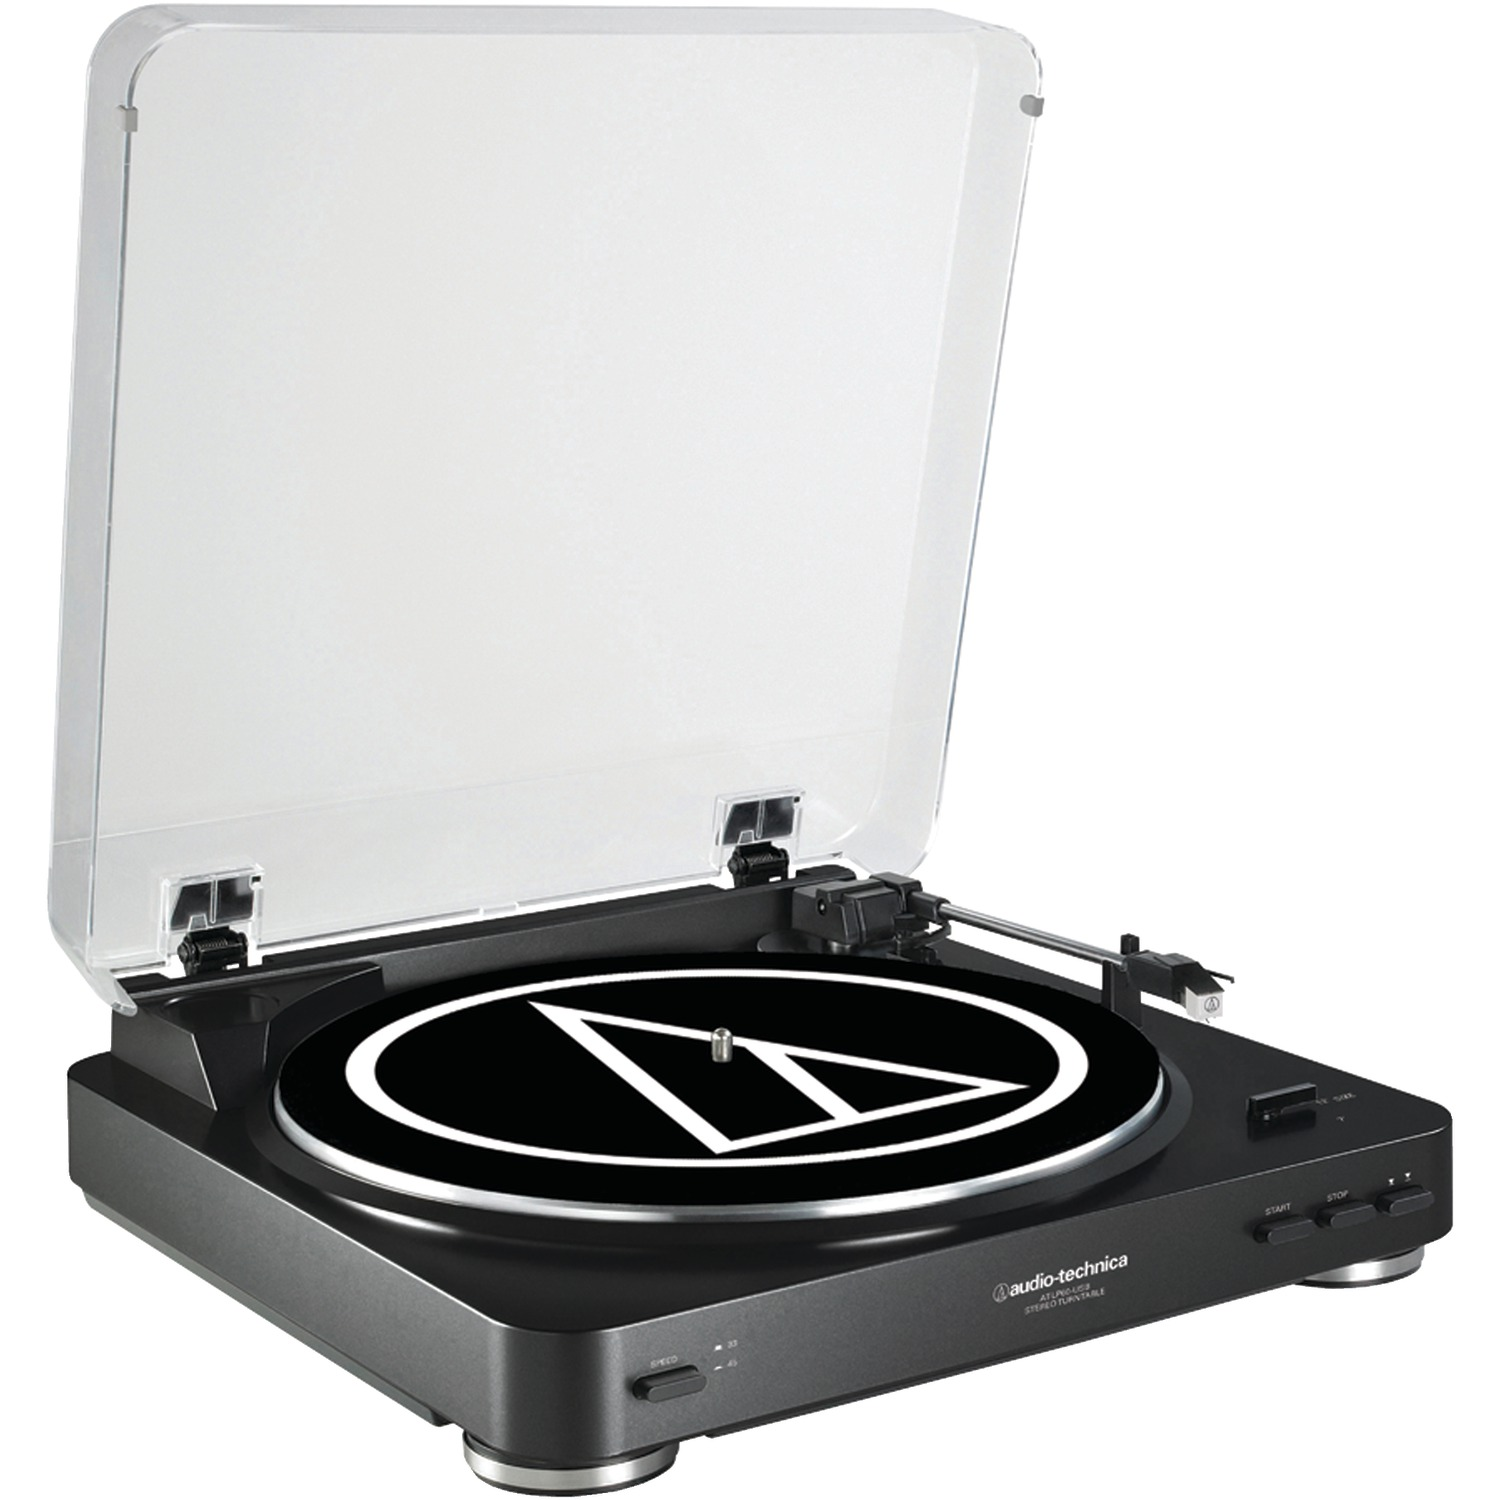 Audio-Technica AT-LP60BK-USB Fully Automatic Belt-Drive USB & Analog Stereo Turntable... by Audio-Technica